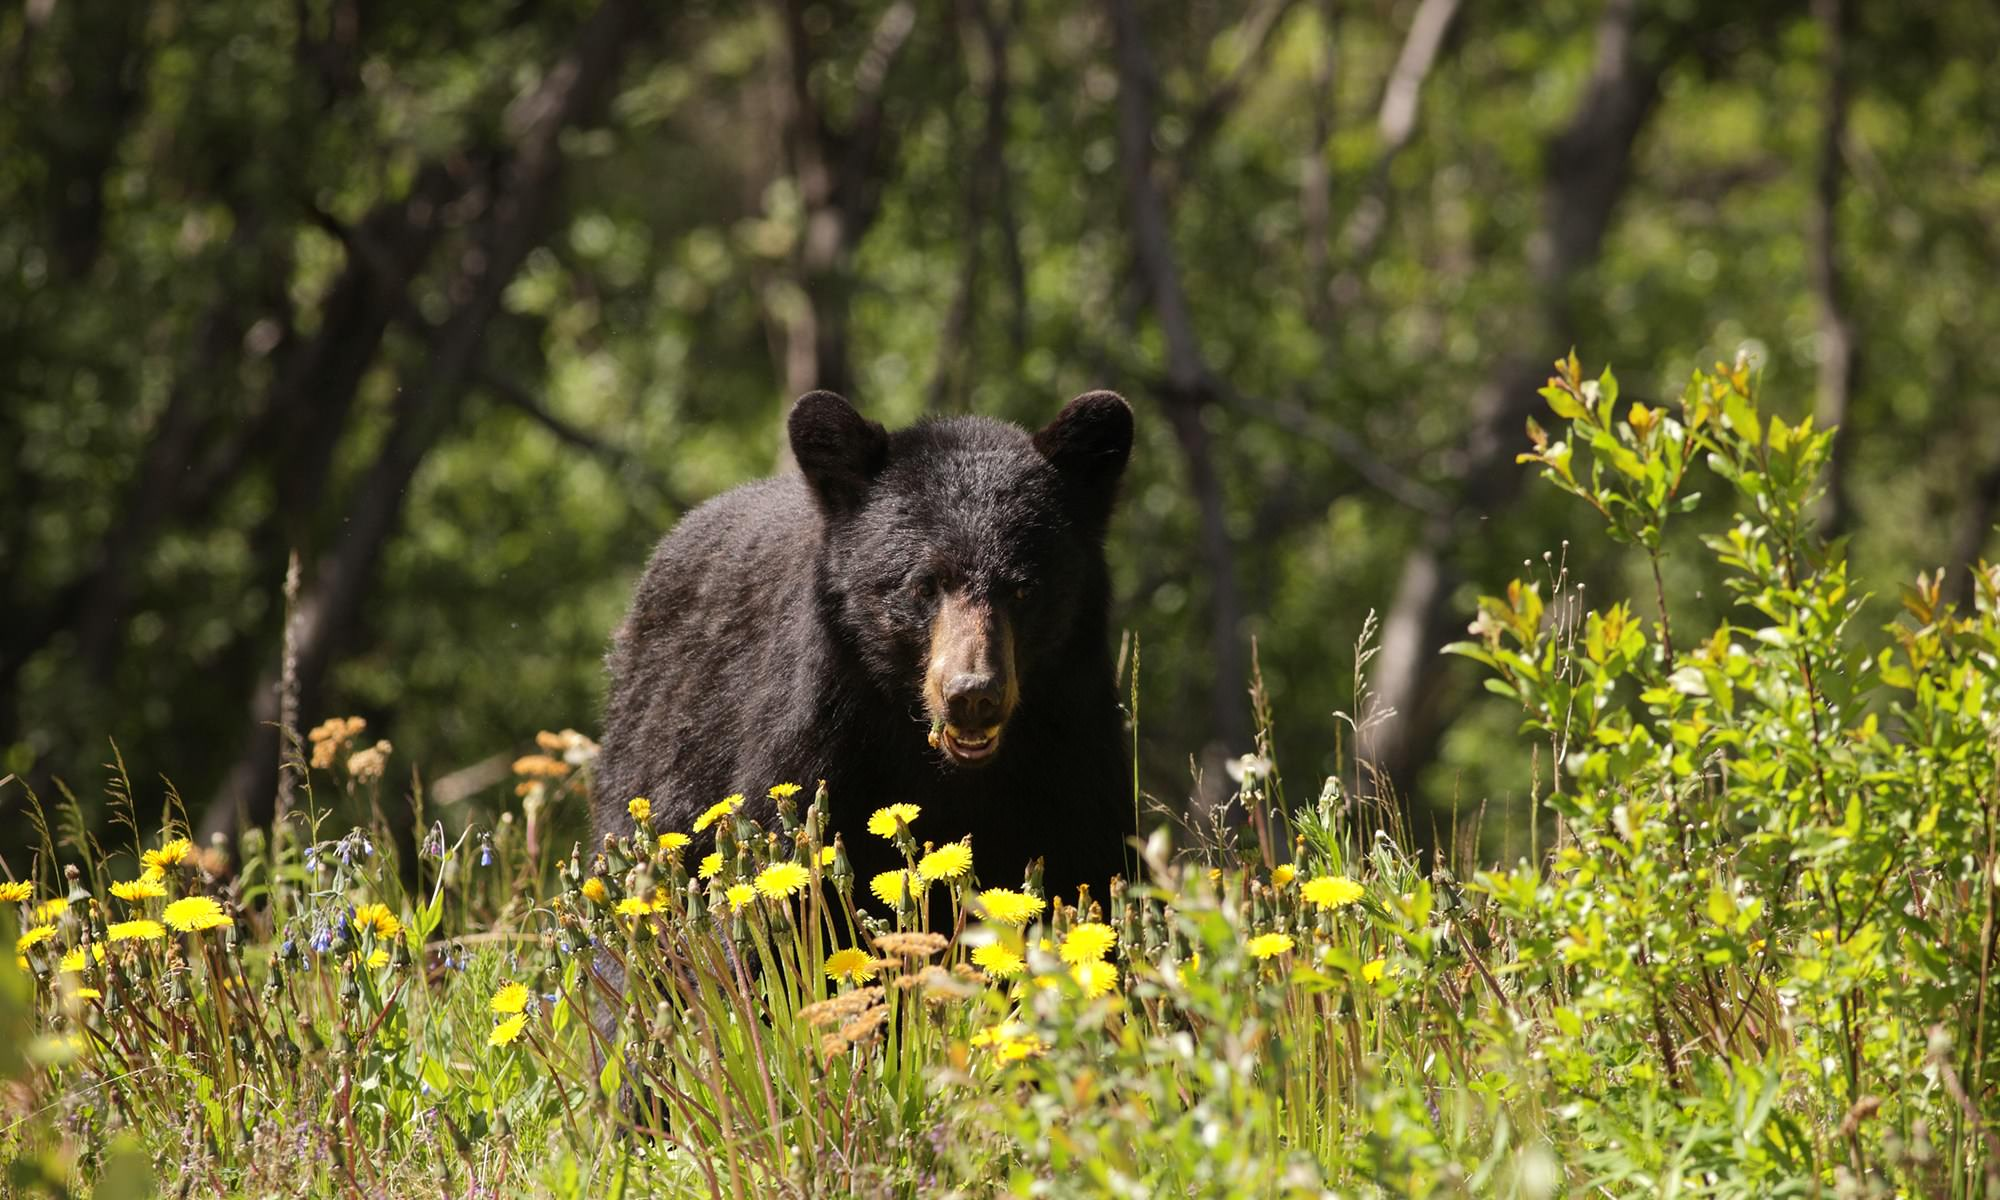 How to Stay Safe While Camping in Black Bear Country